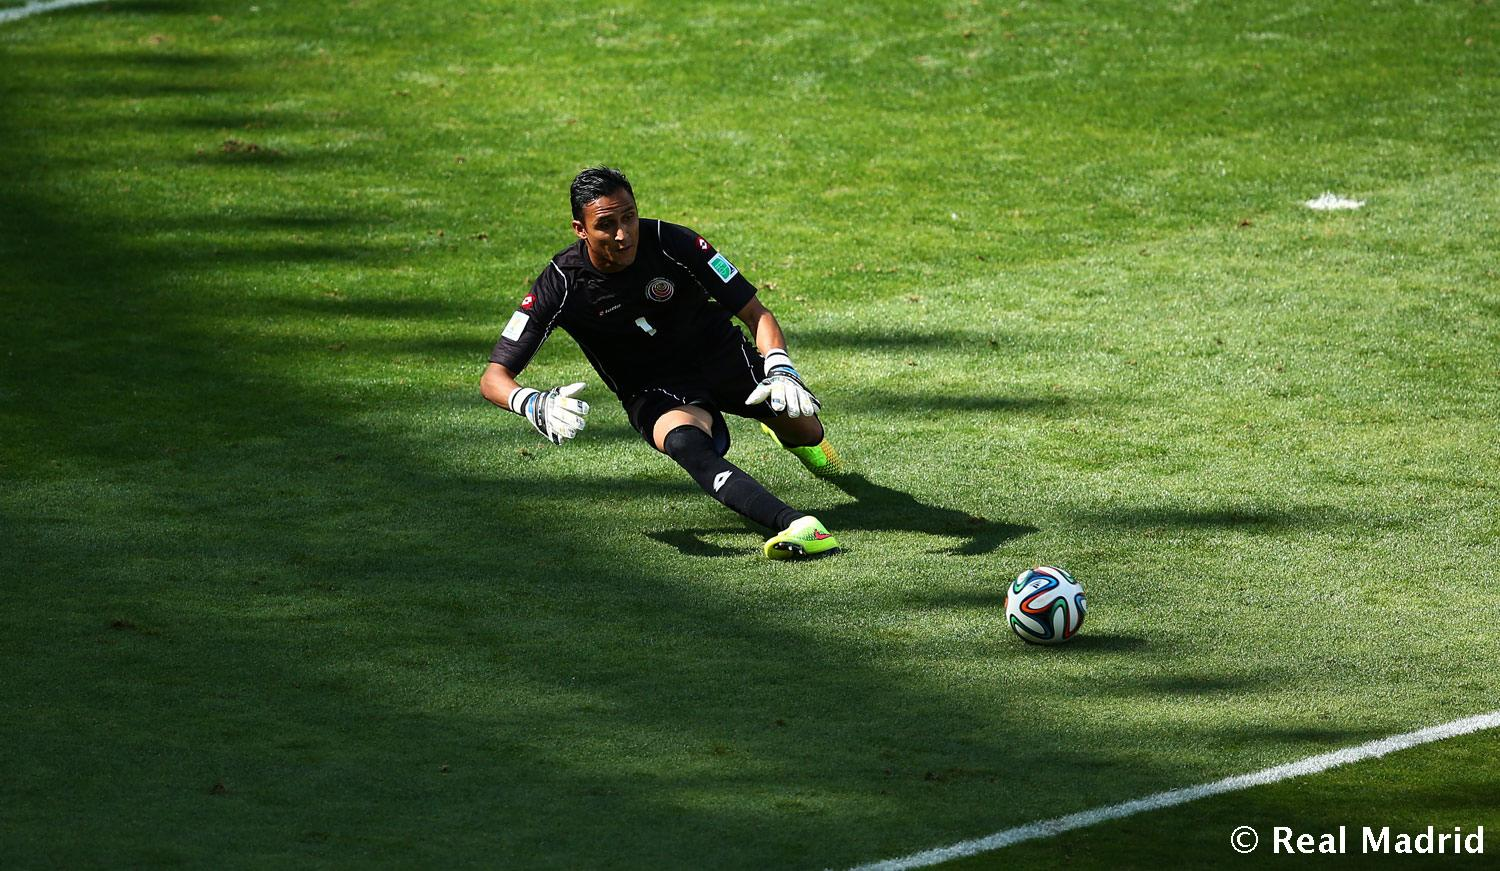 Real Madrid - Keylor Navas - 03-08-2014